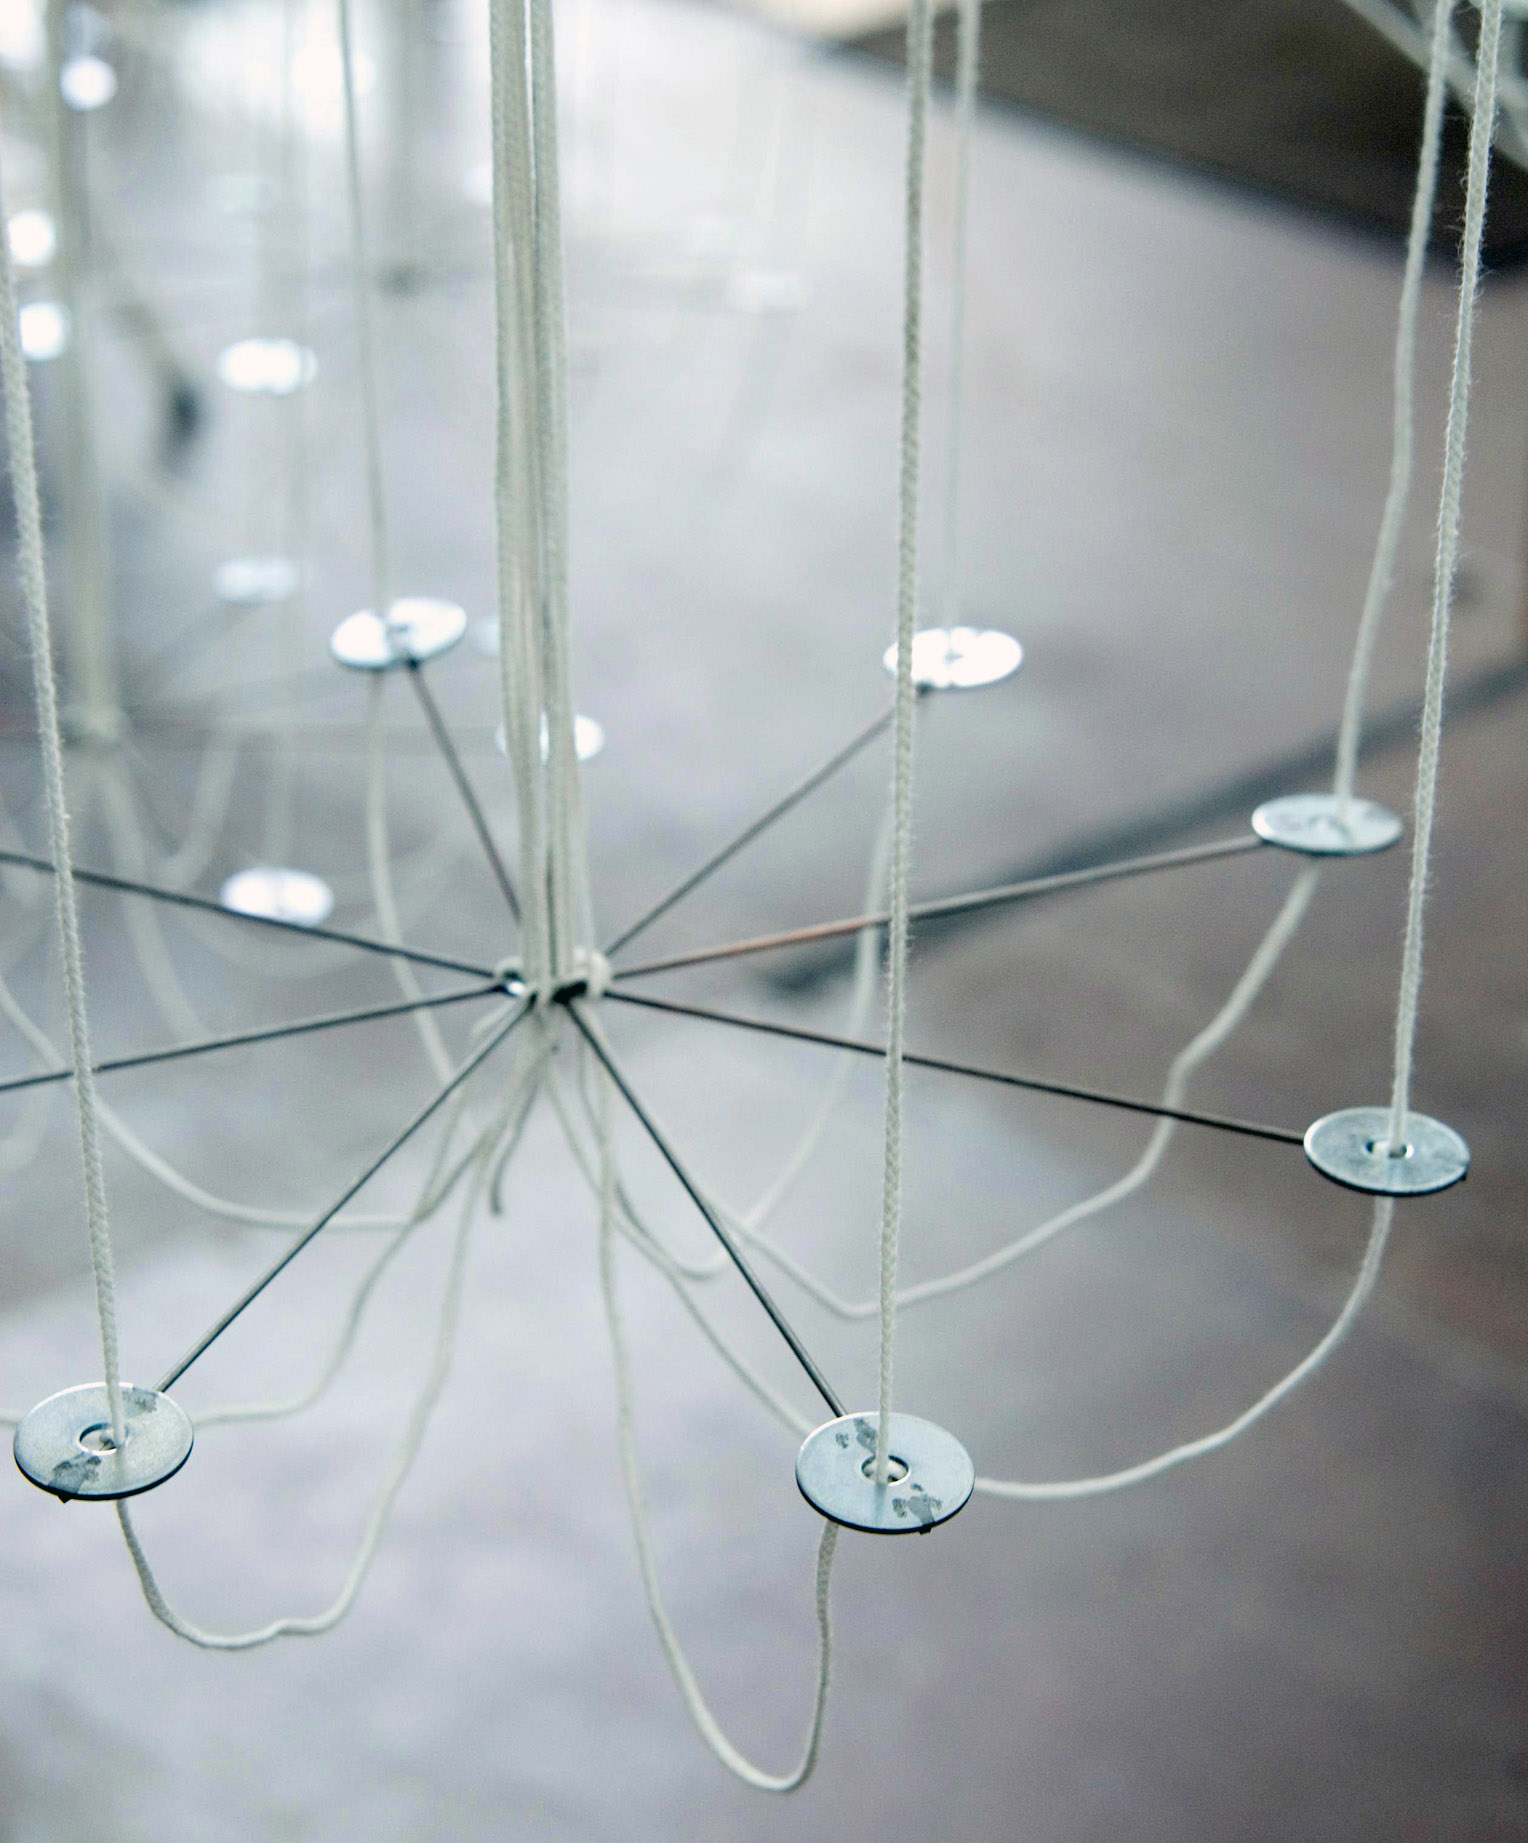 A detail of the way the wick is strung through the wire chandelier frame